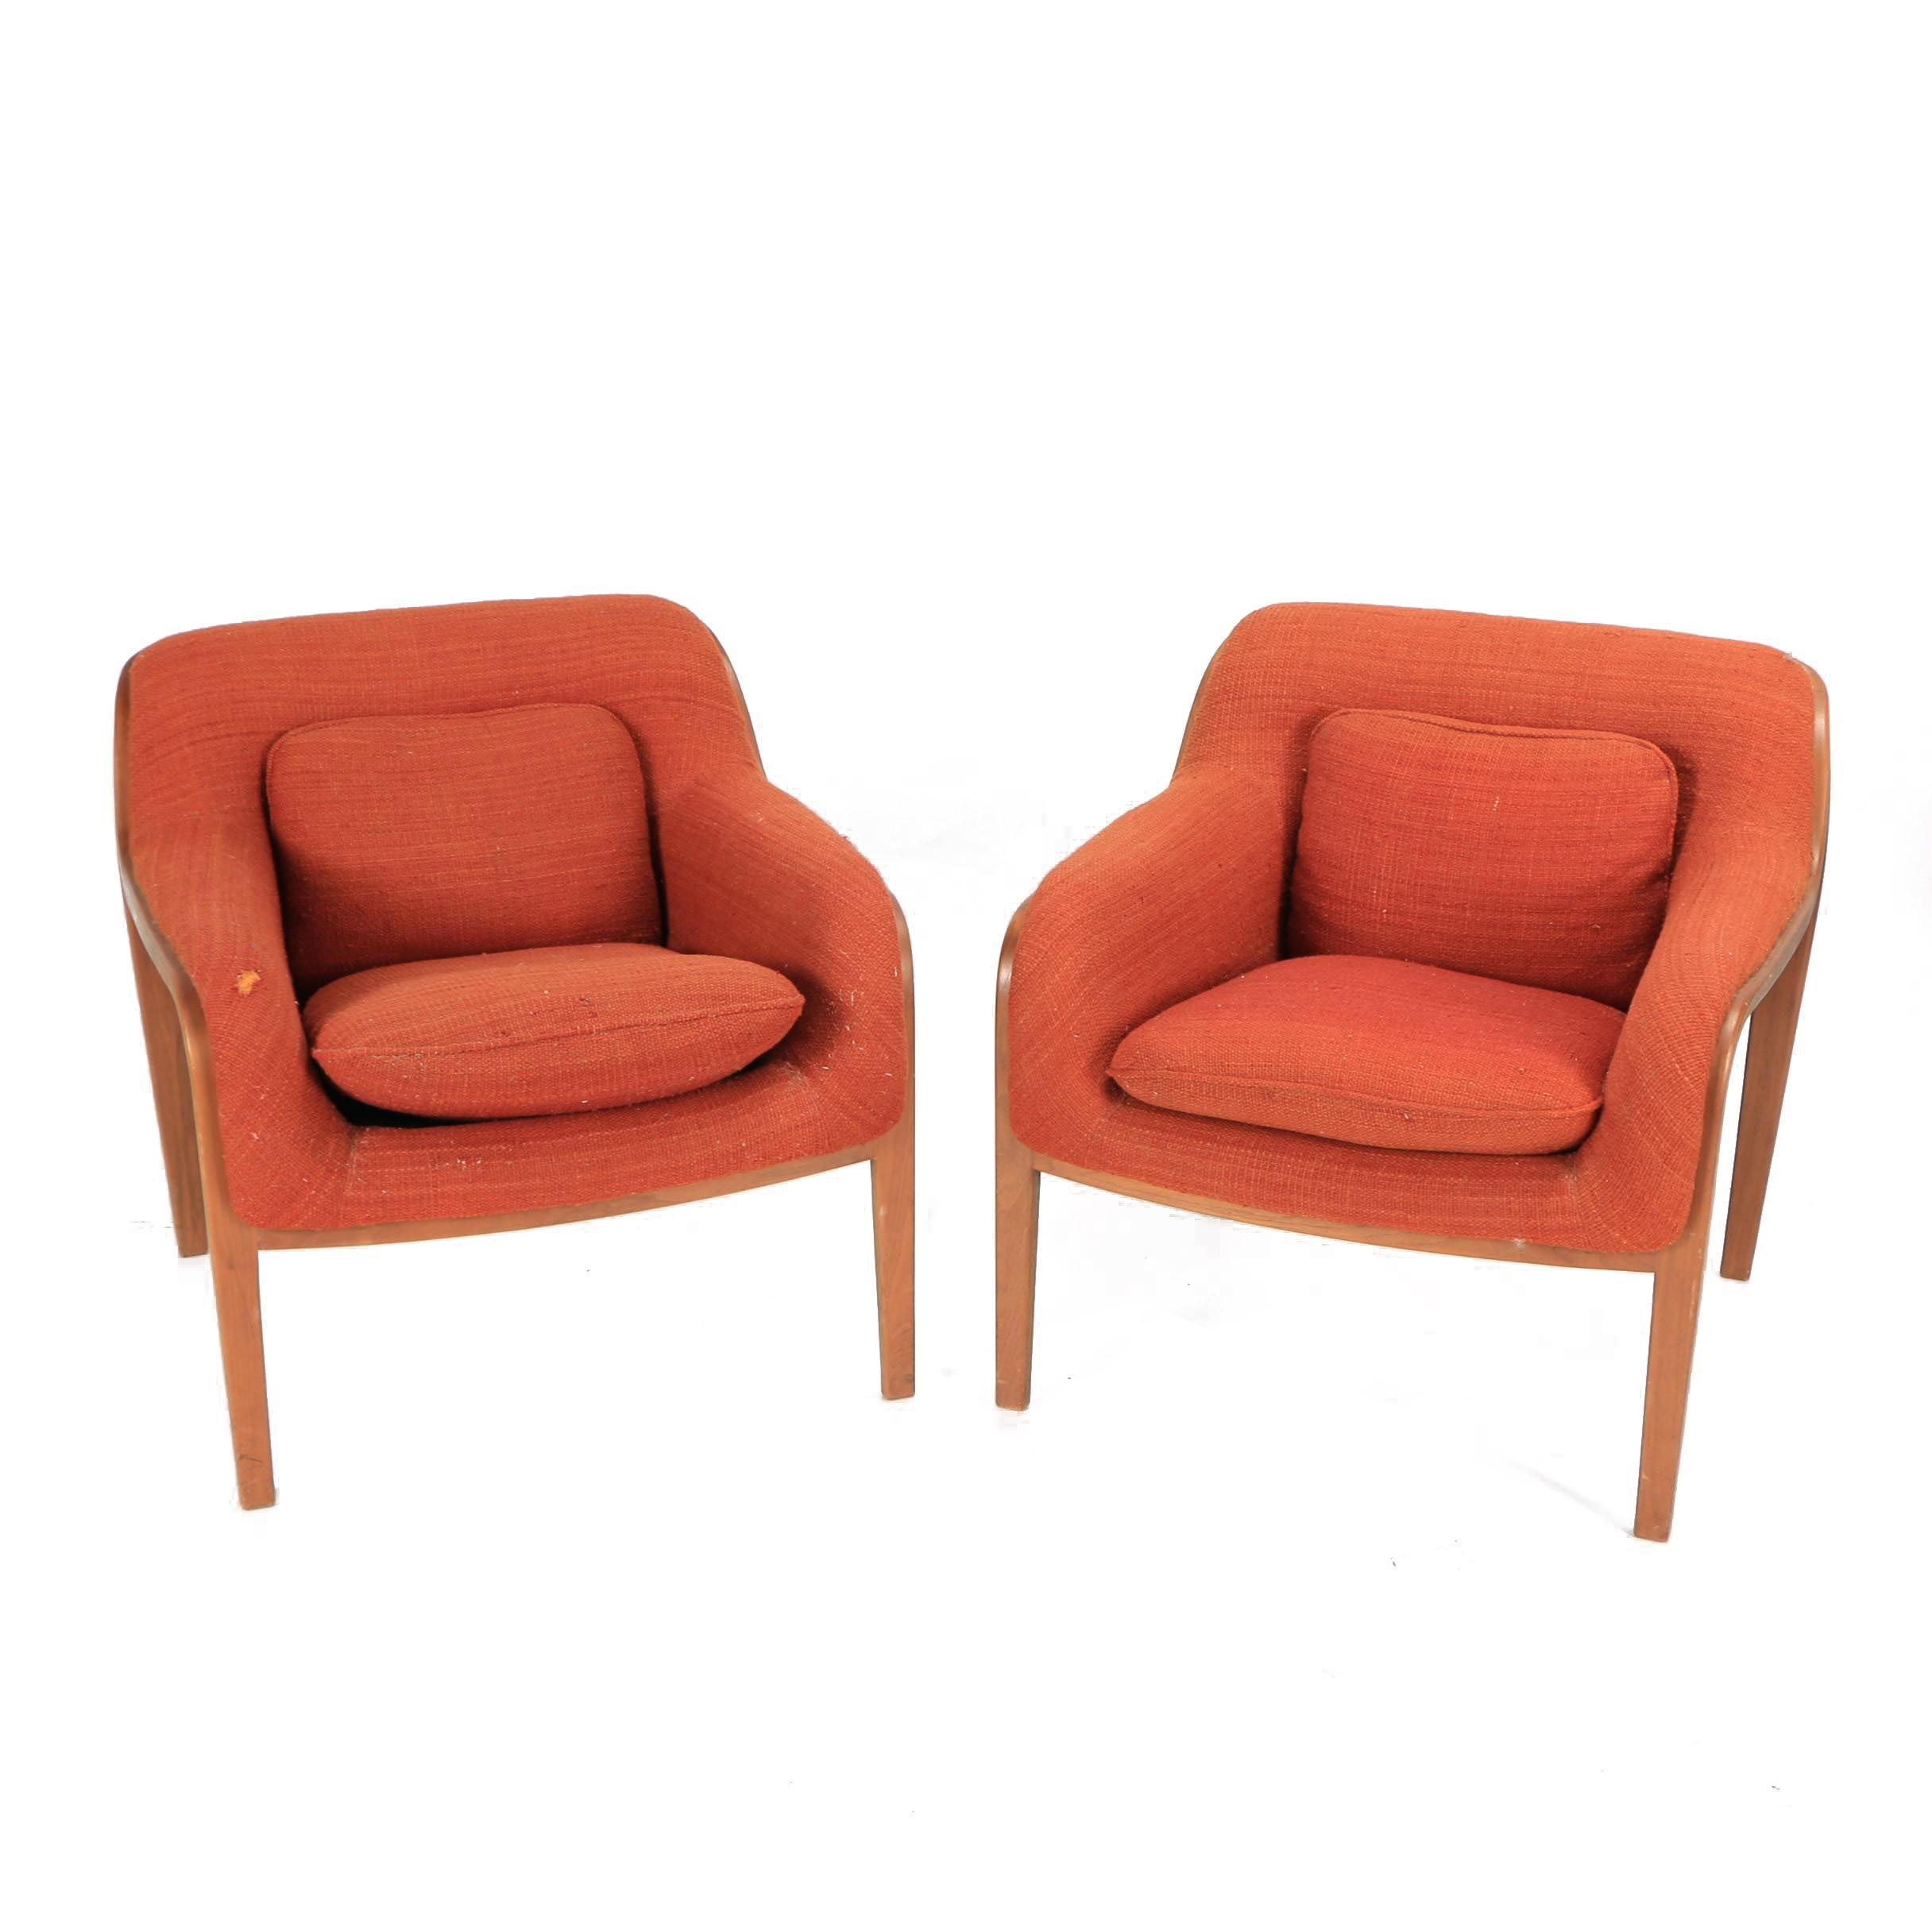 "Knoll ""Stephens Chair"" Lounge Chair Pair"